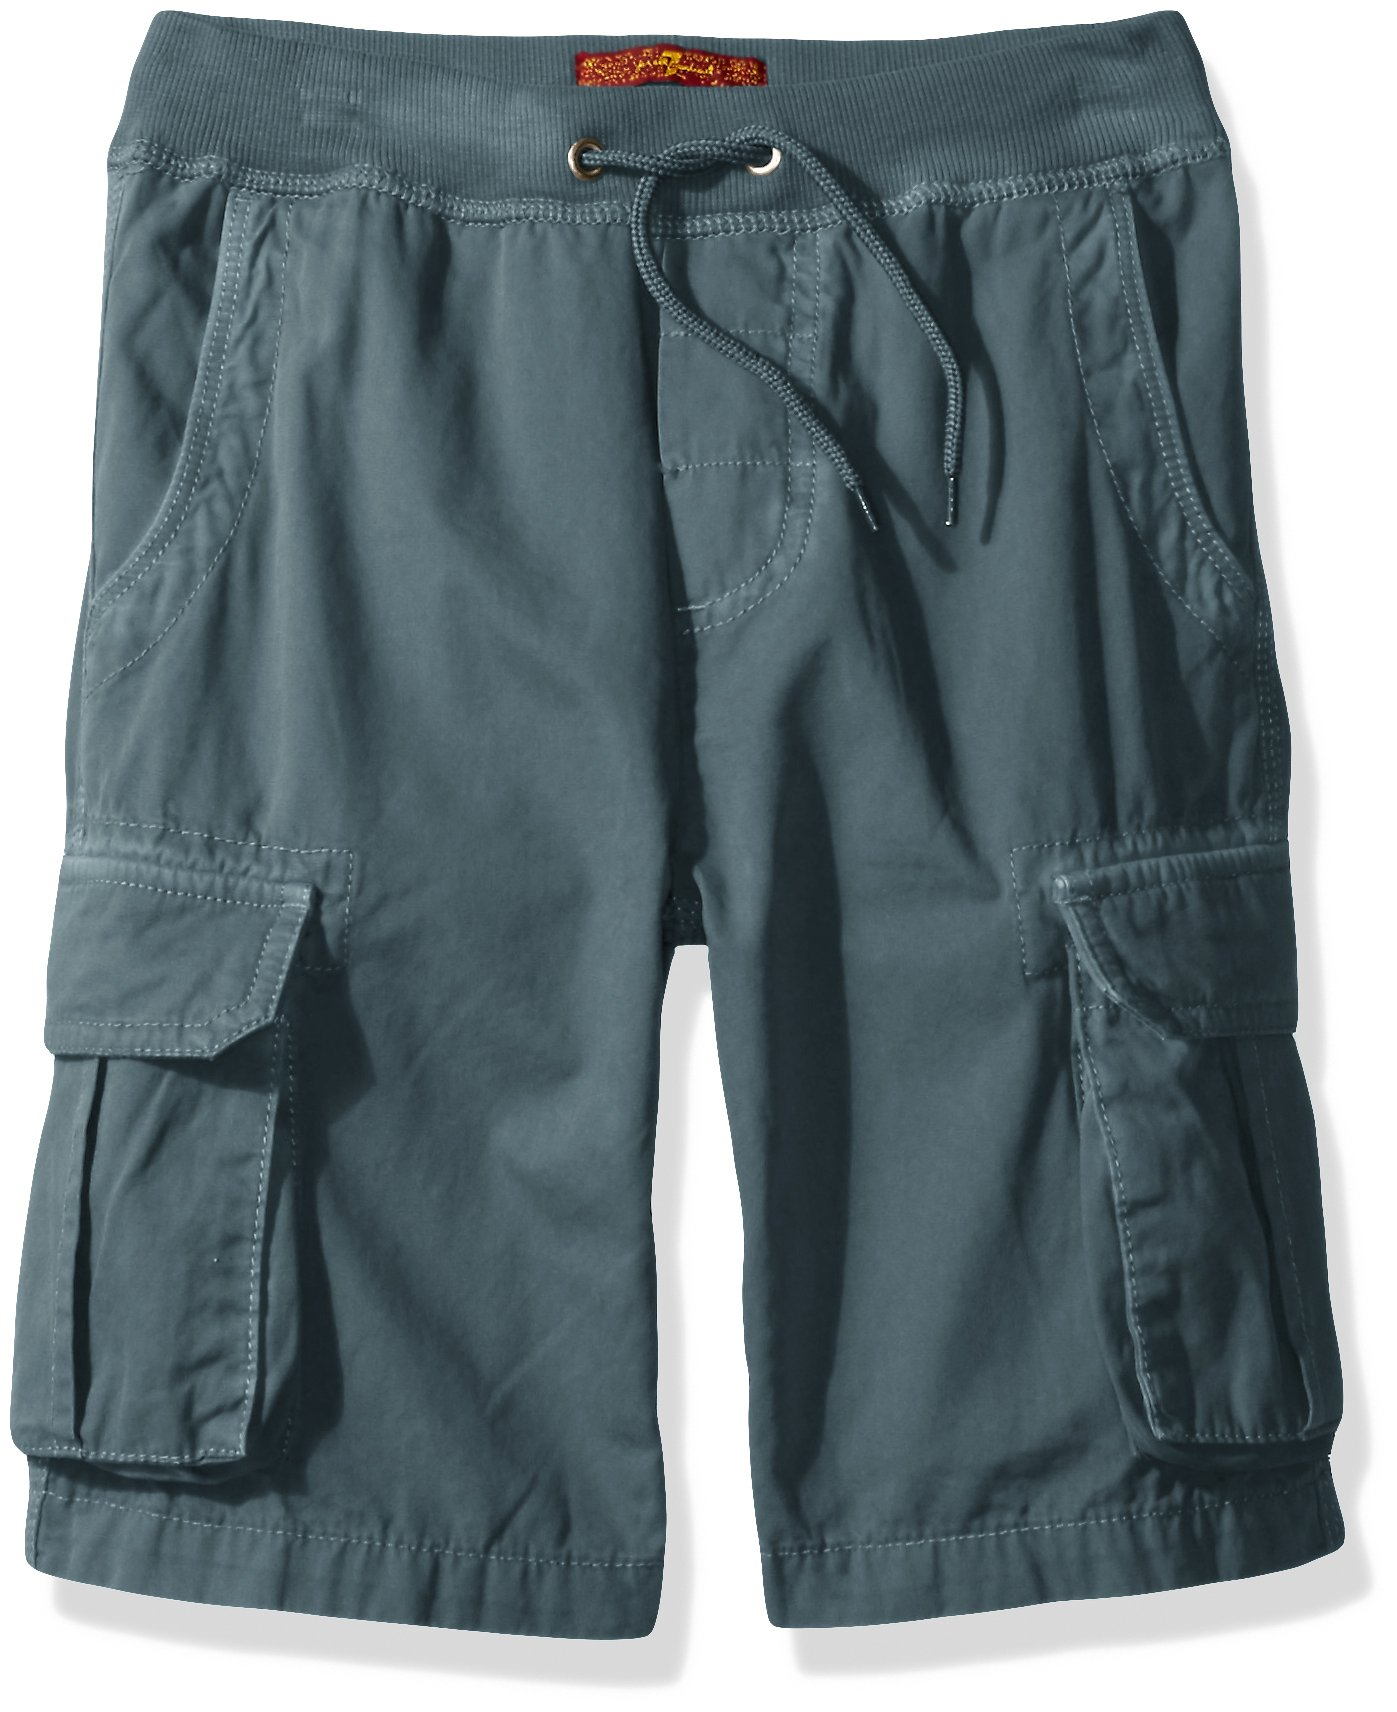 7 For All Mankind Big Boys' Athletic Short, Faded Turquoise, 10